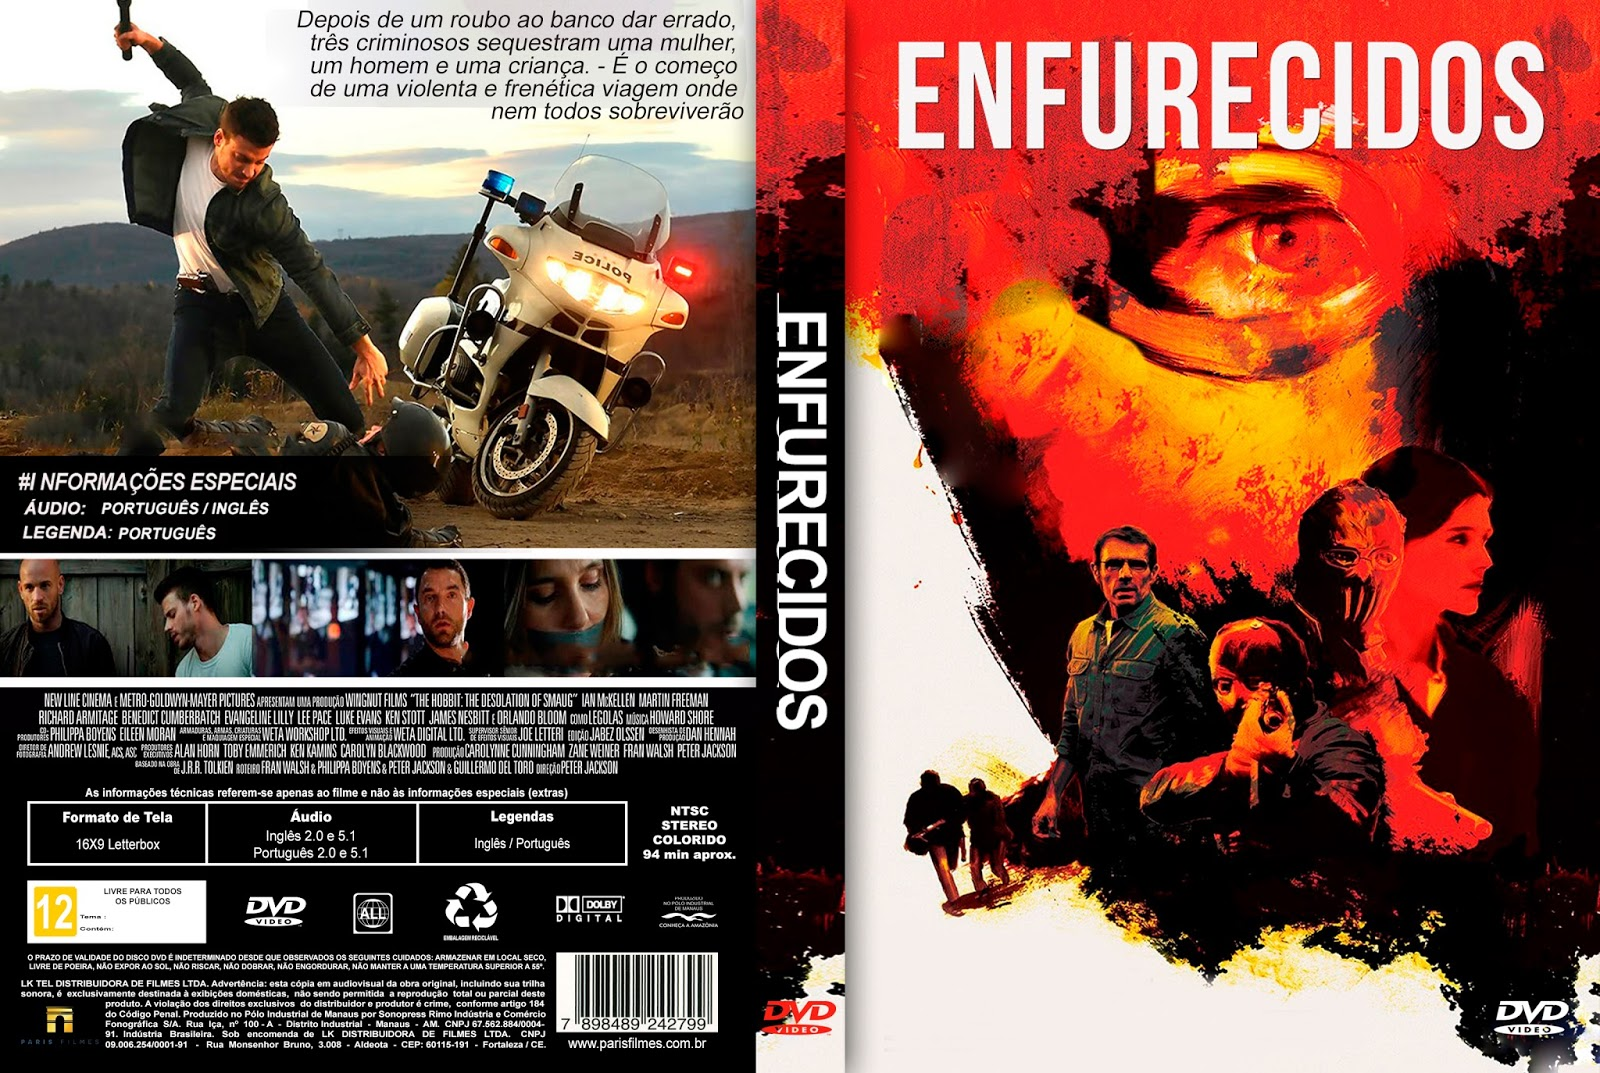 Enfurecidos (2016) Torrent Dublado Download – BDRip Dual Áudio